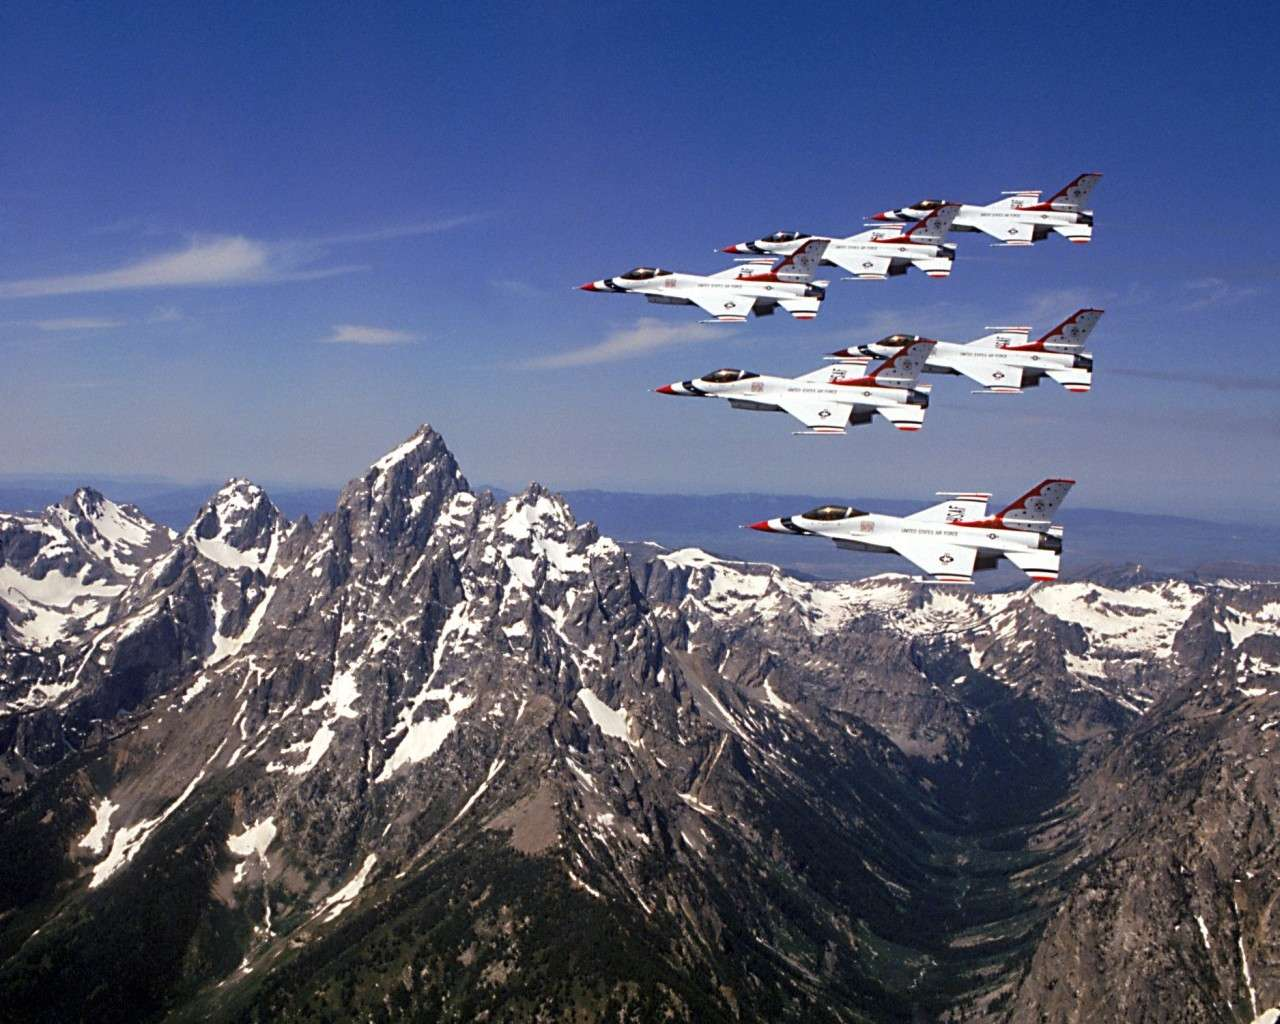 thunderbirds images wallpapers hd - photo #1